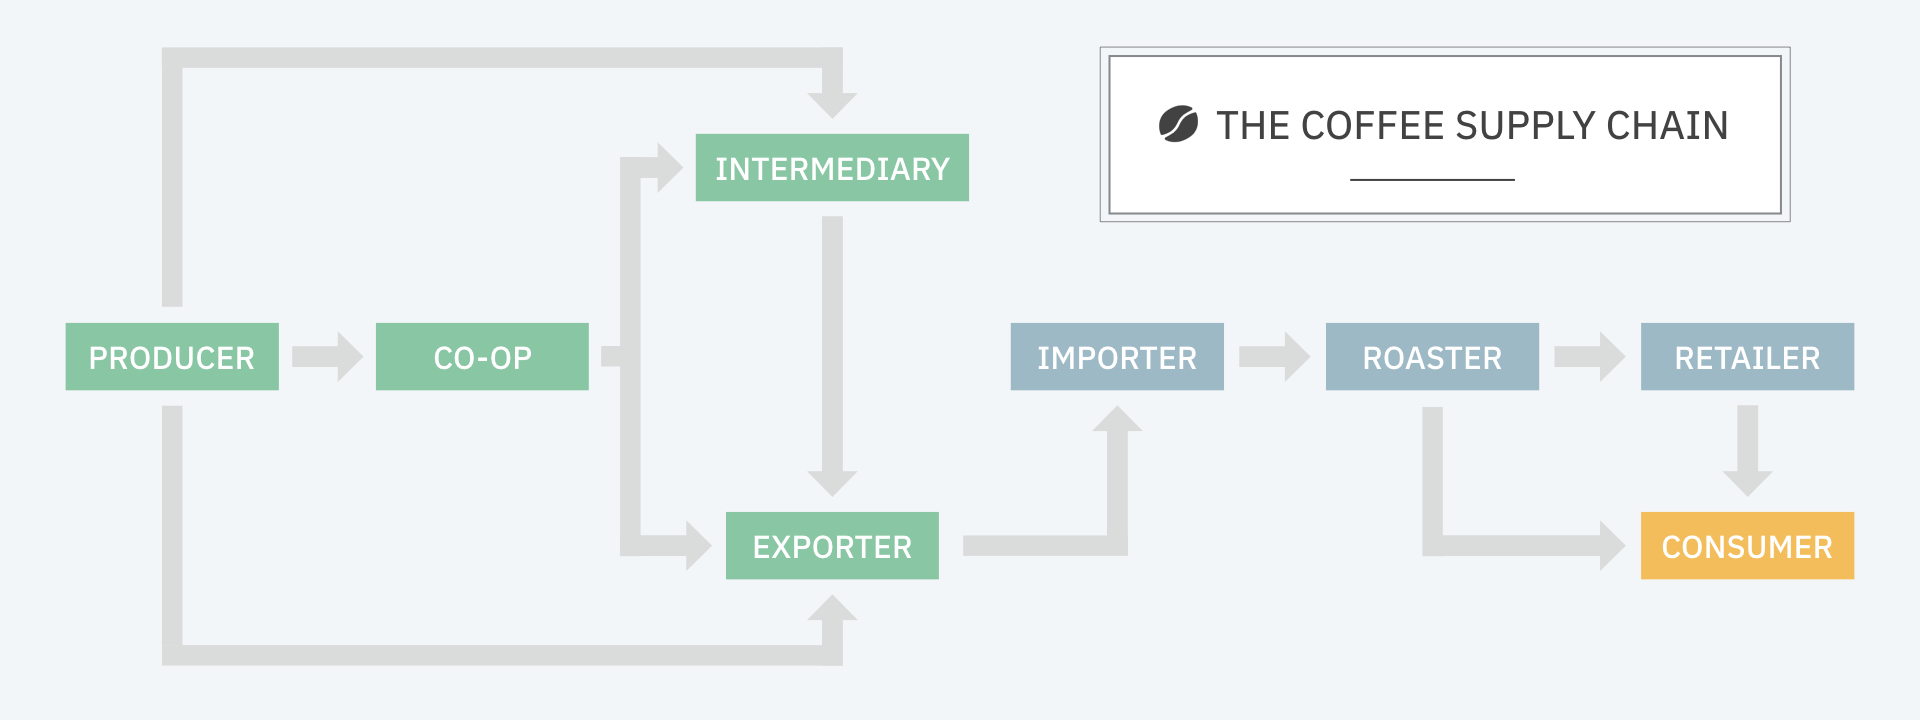 hight resolution of coffee supply chain diagram 001